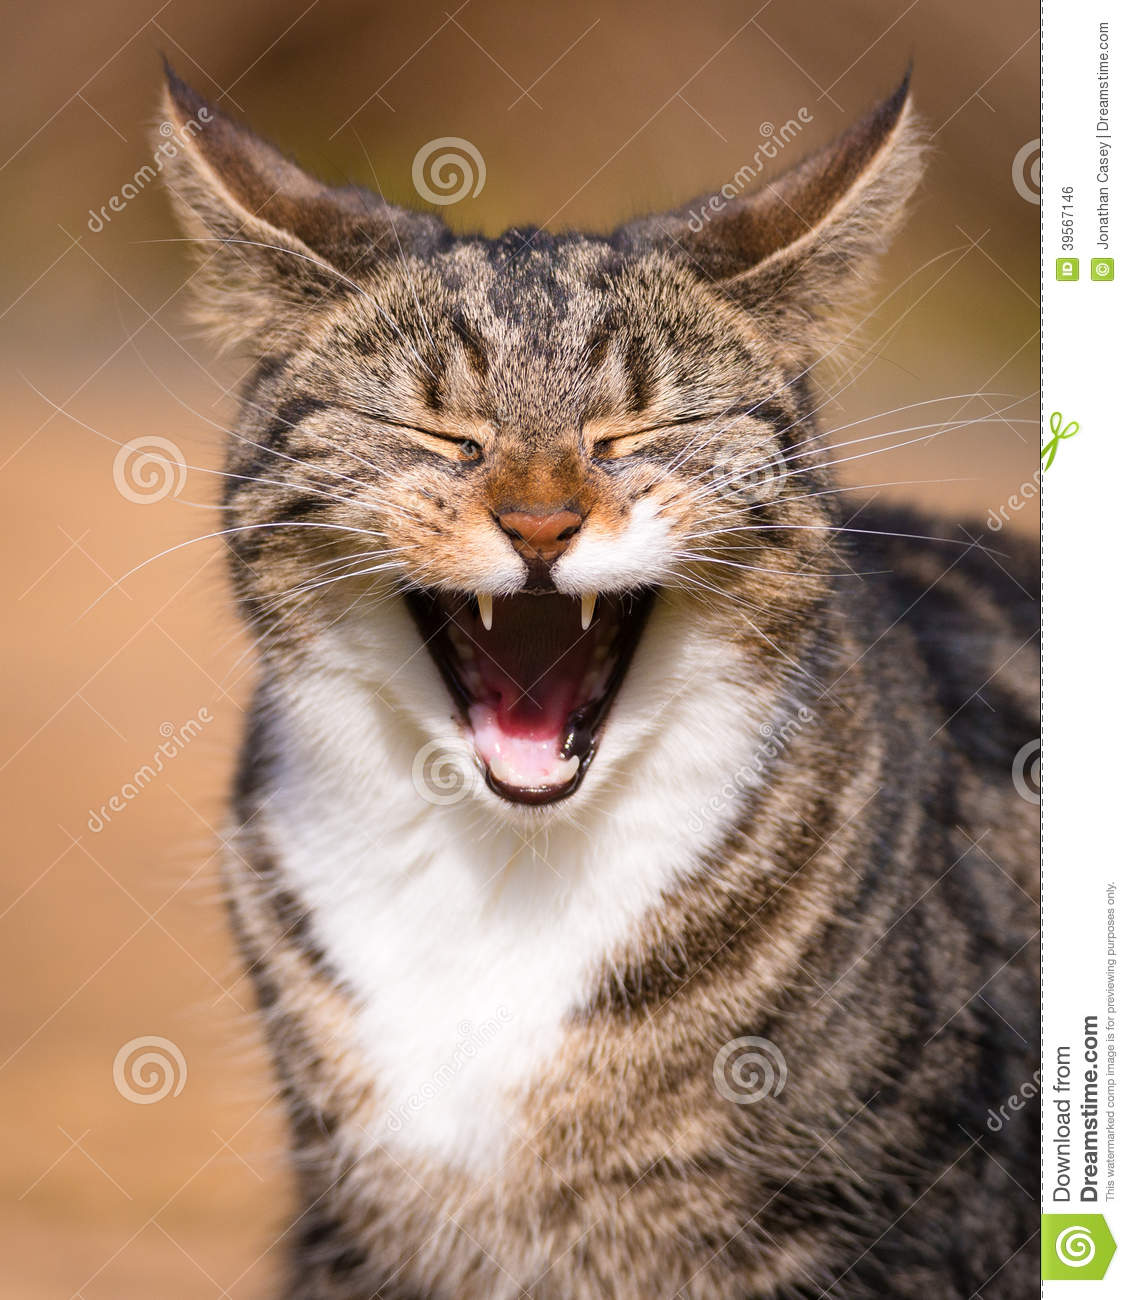 Tabby Cat Laughing